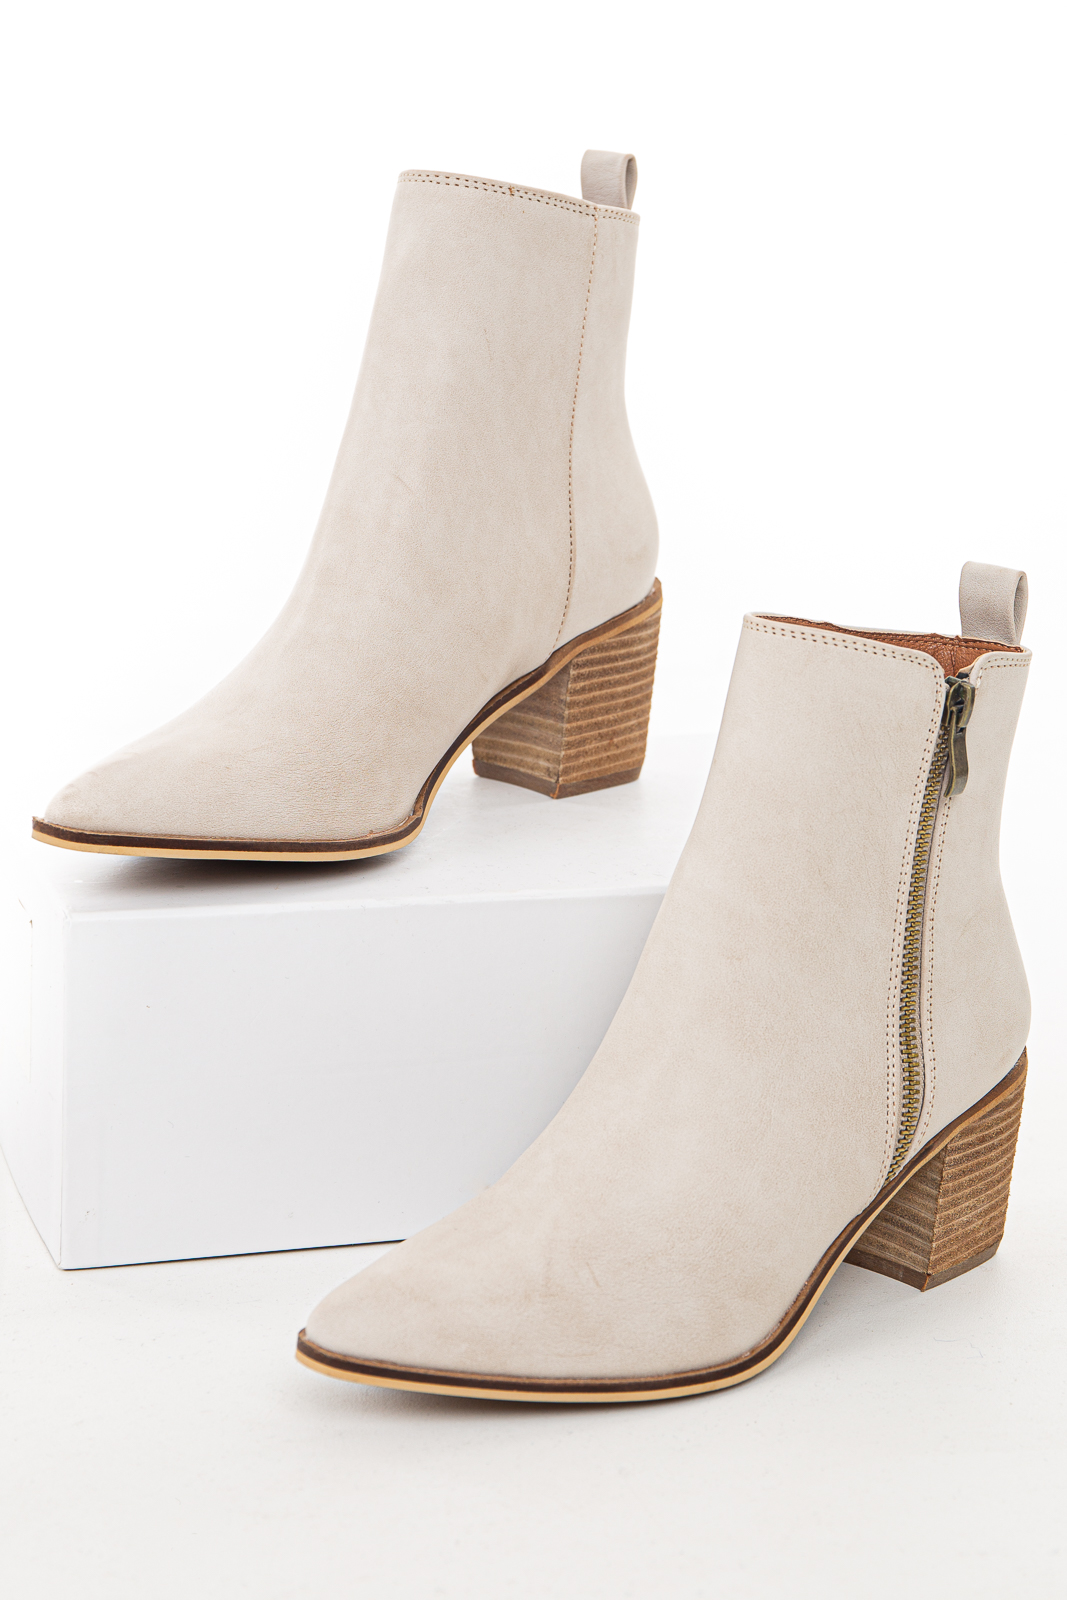 Light Grey High Top Booties with Block Heel and Pointed Toe